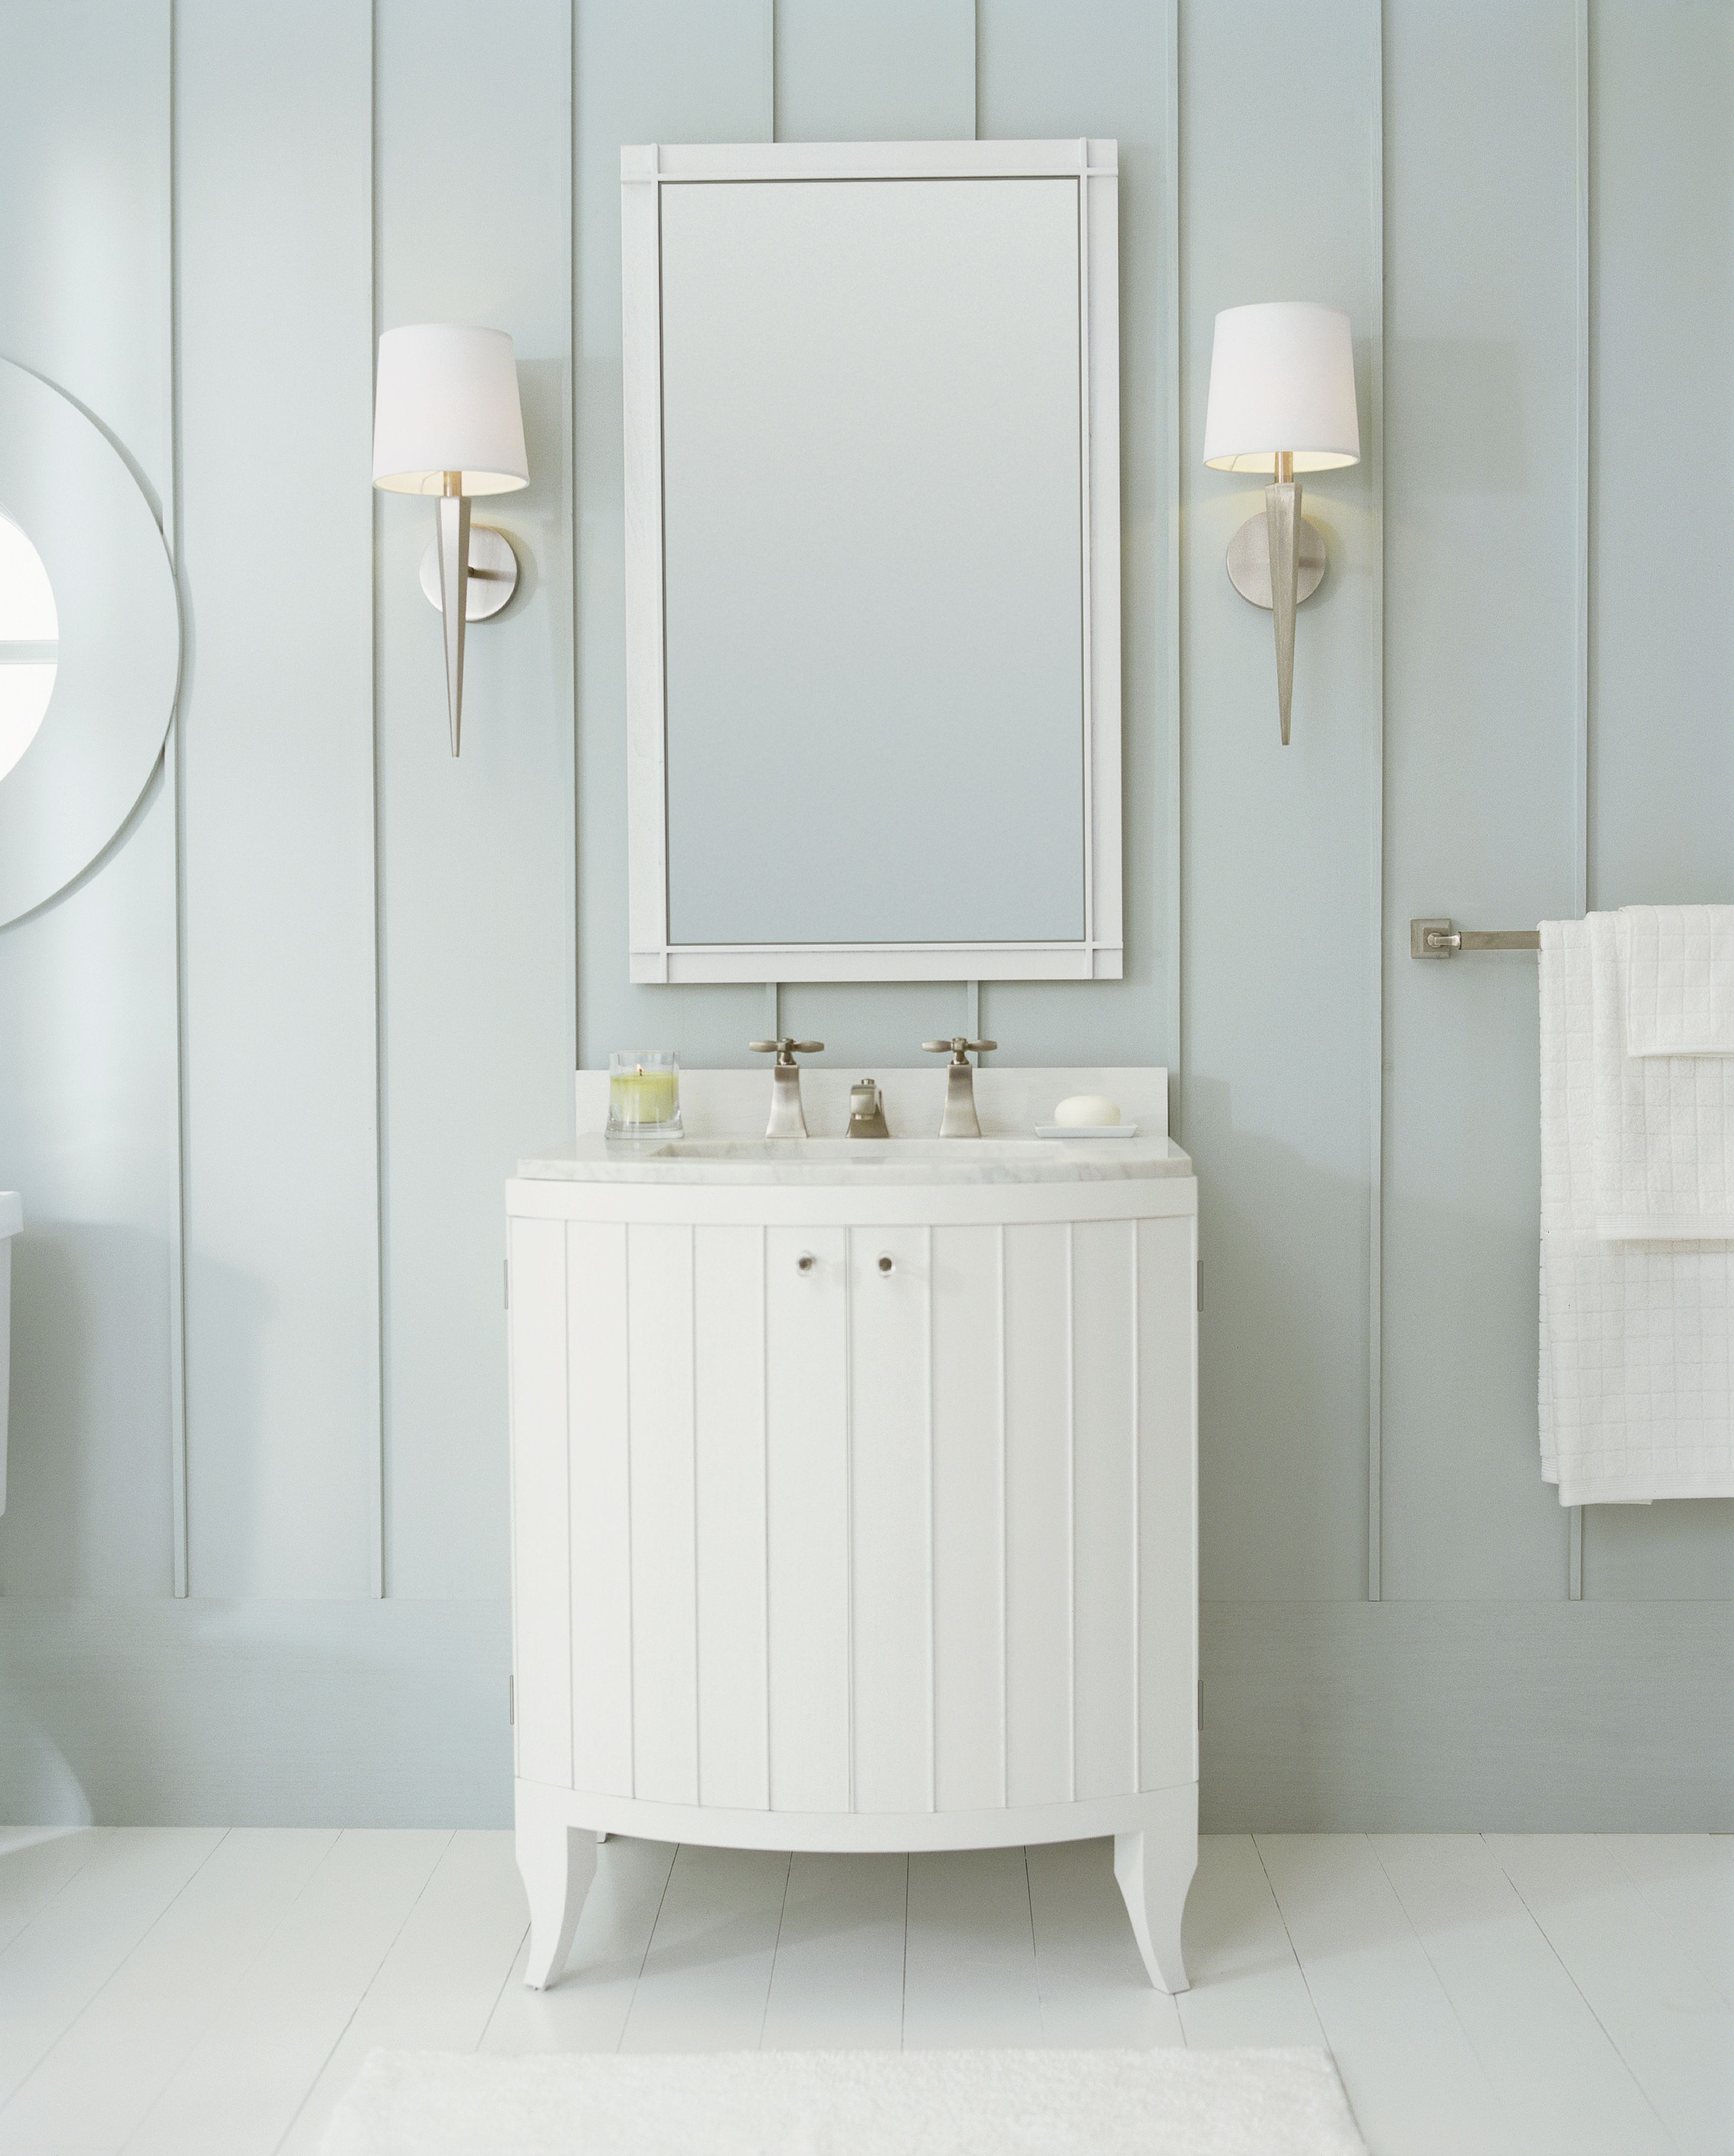 Original Collection By Barbara Barry Faucet Vanity Mirror And Lighting From Kallista